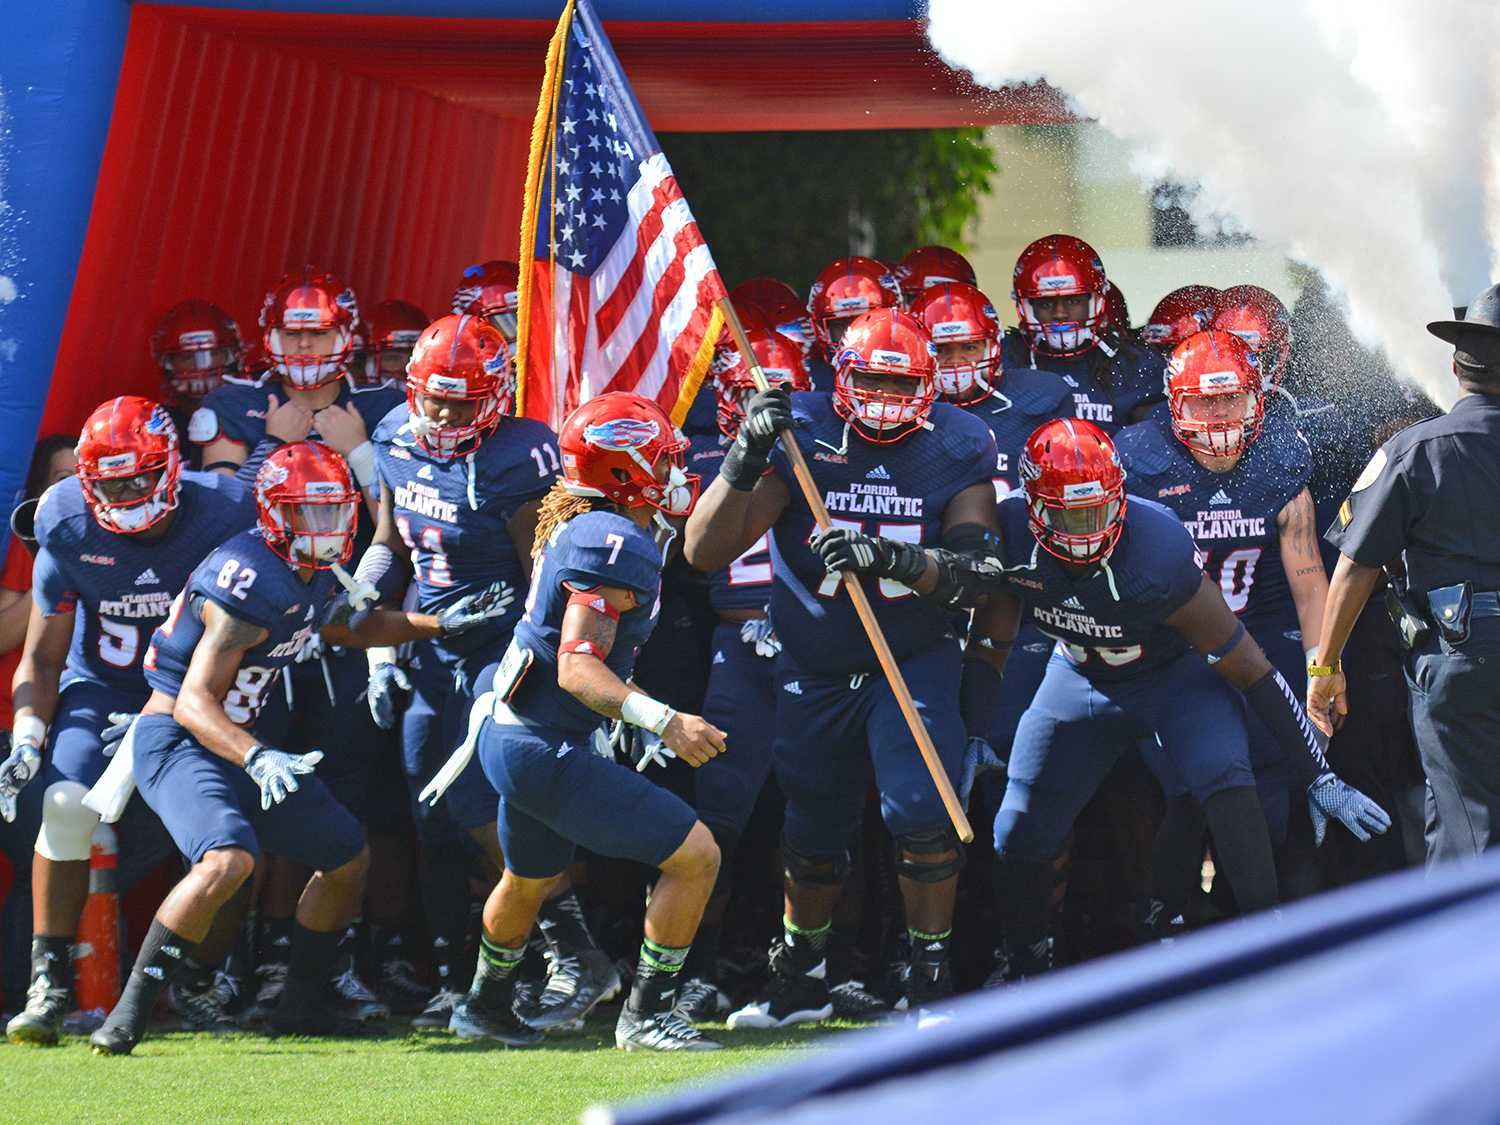 The Owls takes the field for their last game of the season. FAU finished the 2014 season with a 3-9 record after the 31-28 loss against Old Dominion.